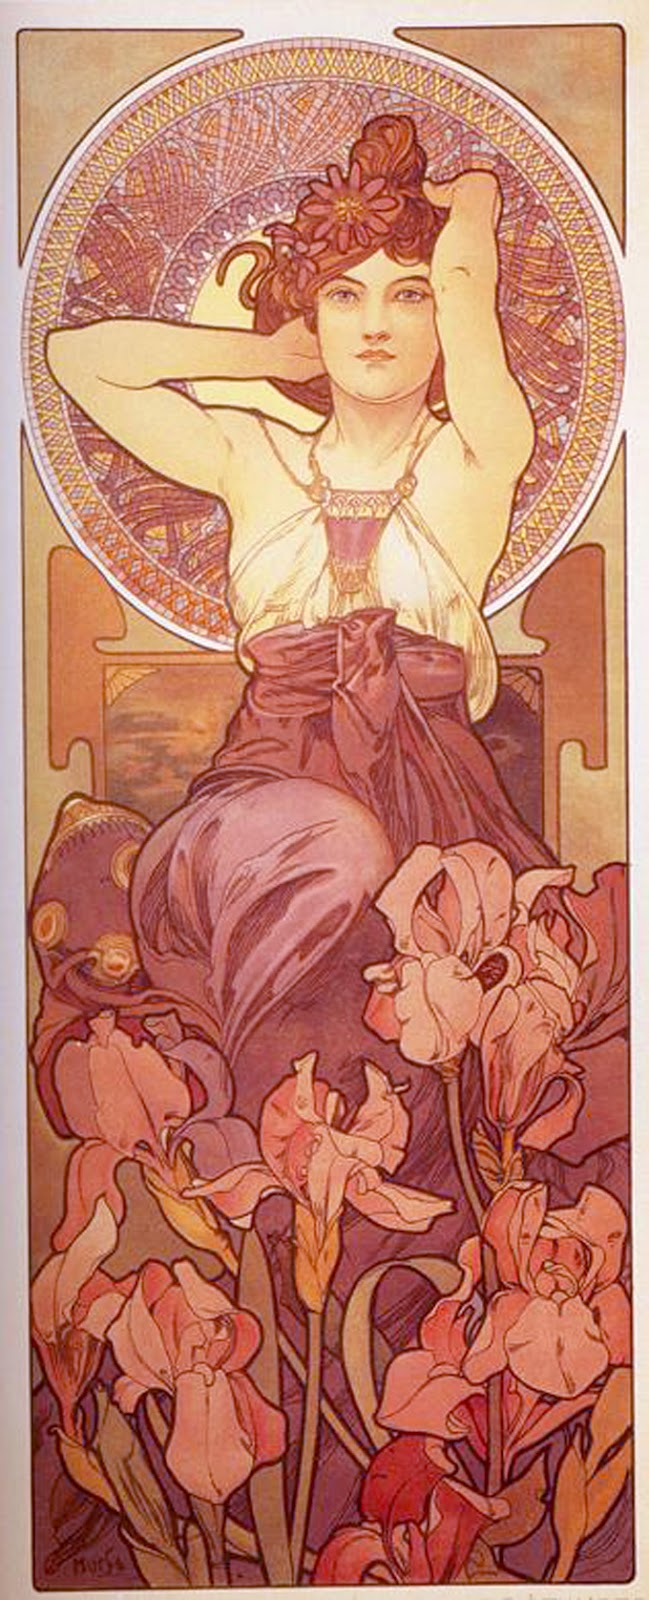 The best hearts are crunchy sitting in her garden pink saturday here is another wonderful piece of art by alphonse mucha a french artist one of those artists of old whos work seems to have influenced an entire age of altavistaventures Image collections